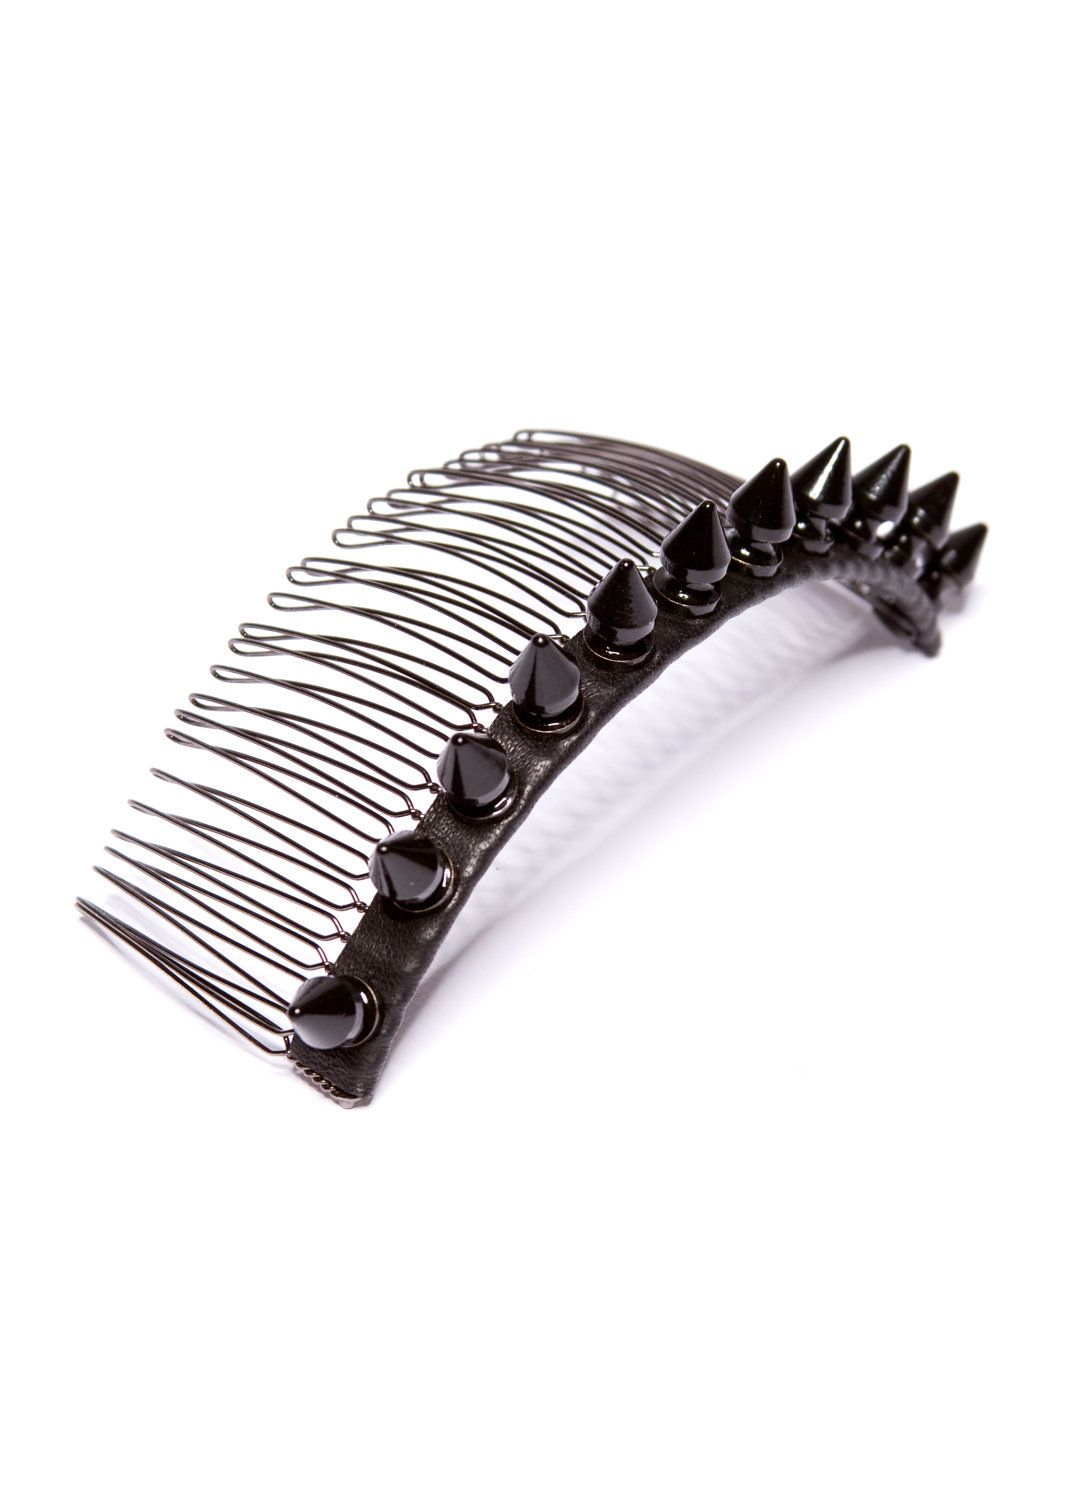 Spike Hair Comb - Black. $85.00, via Etsy.